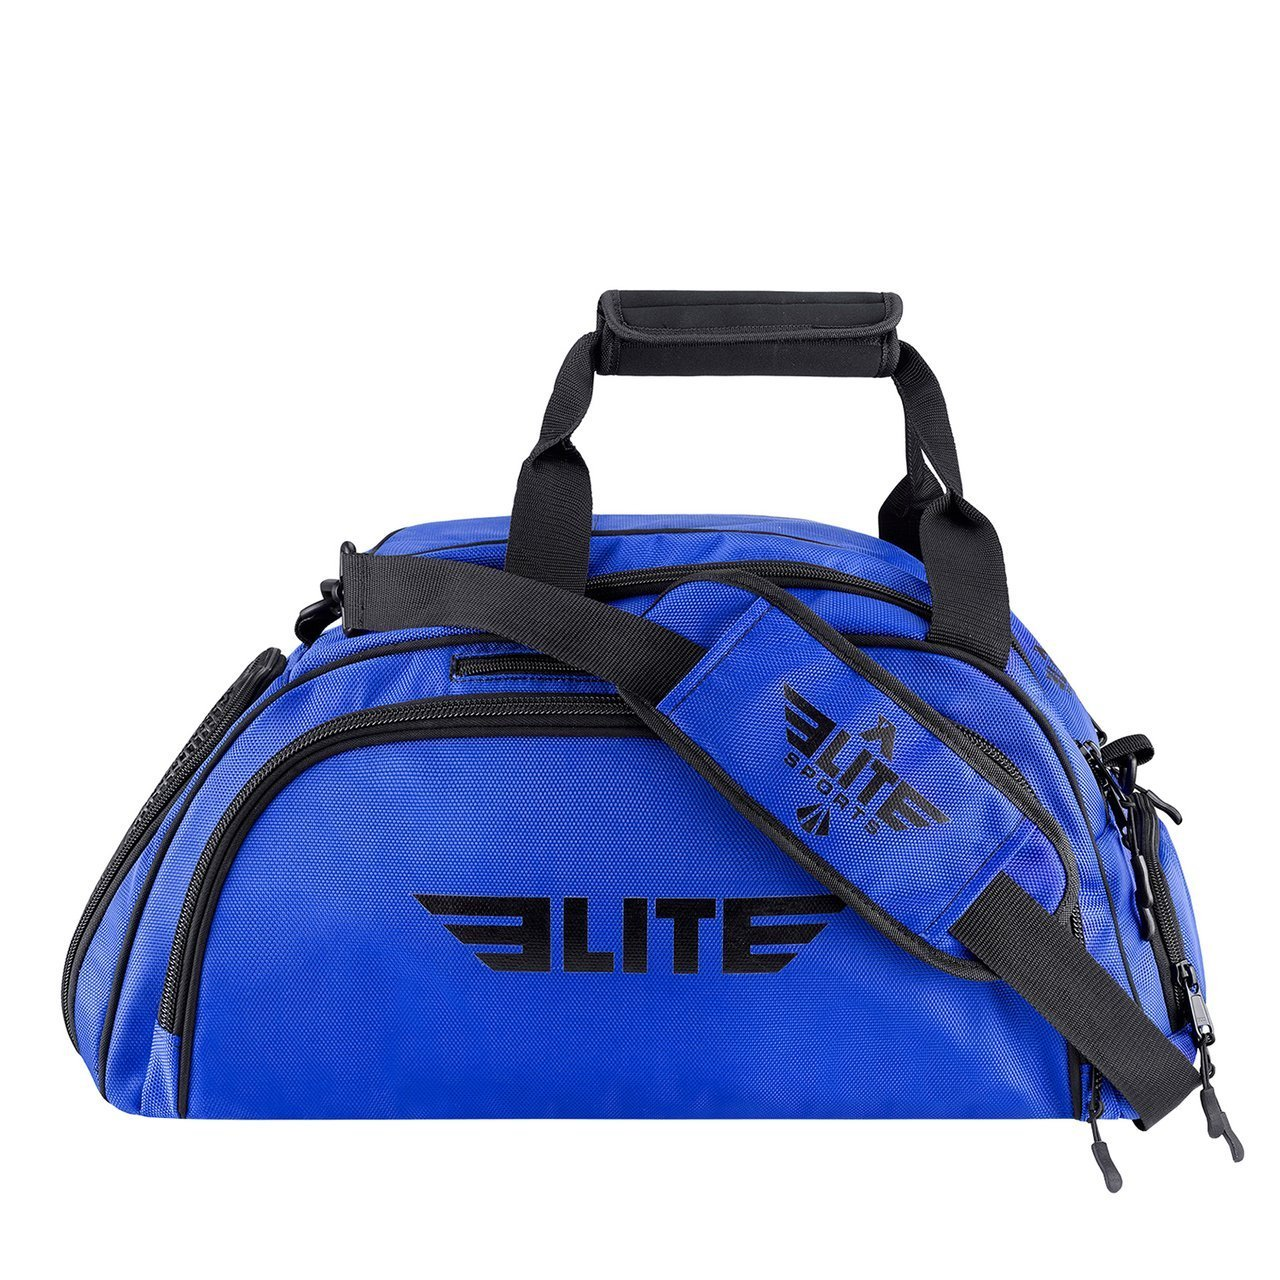 Elite Sports Warrior Series Blue Medium Duffel Taekwondo Gear Gym Bag & Backpack